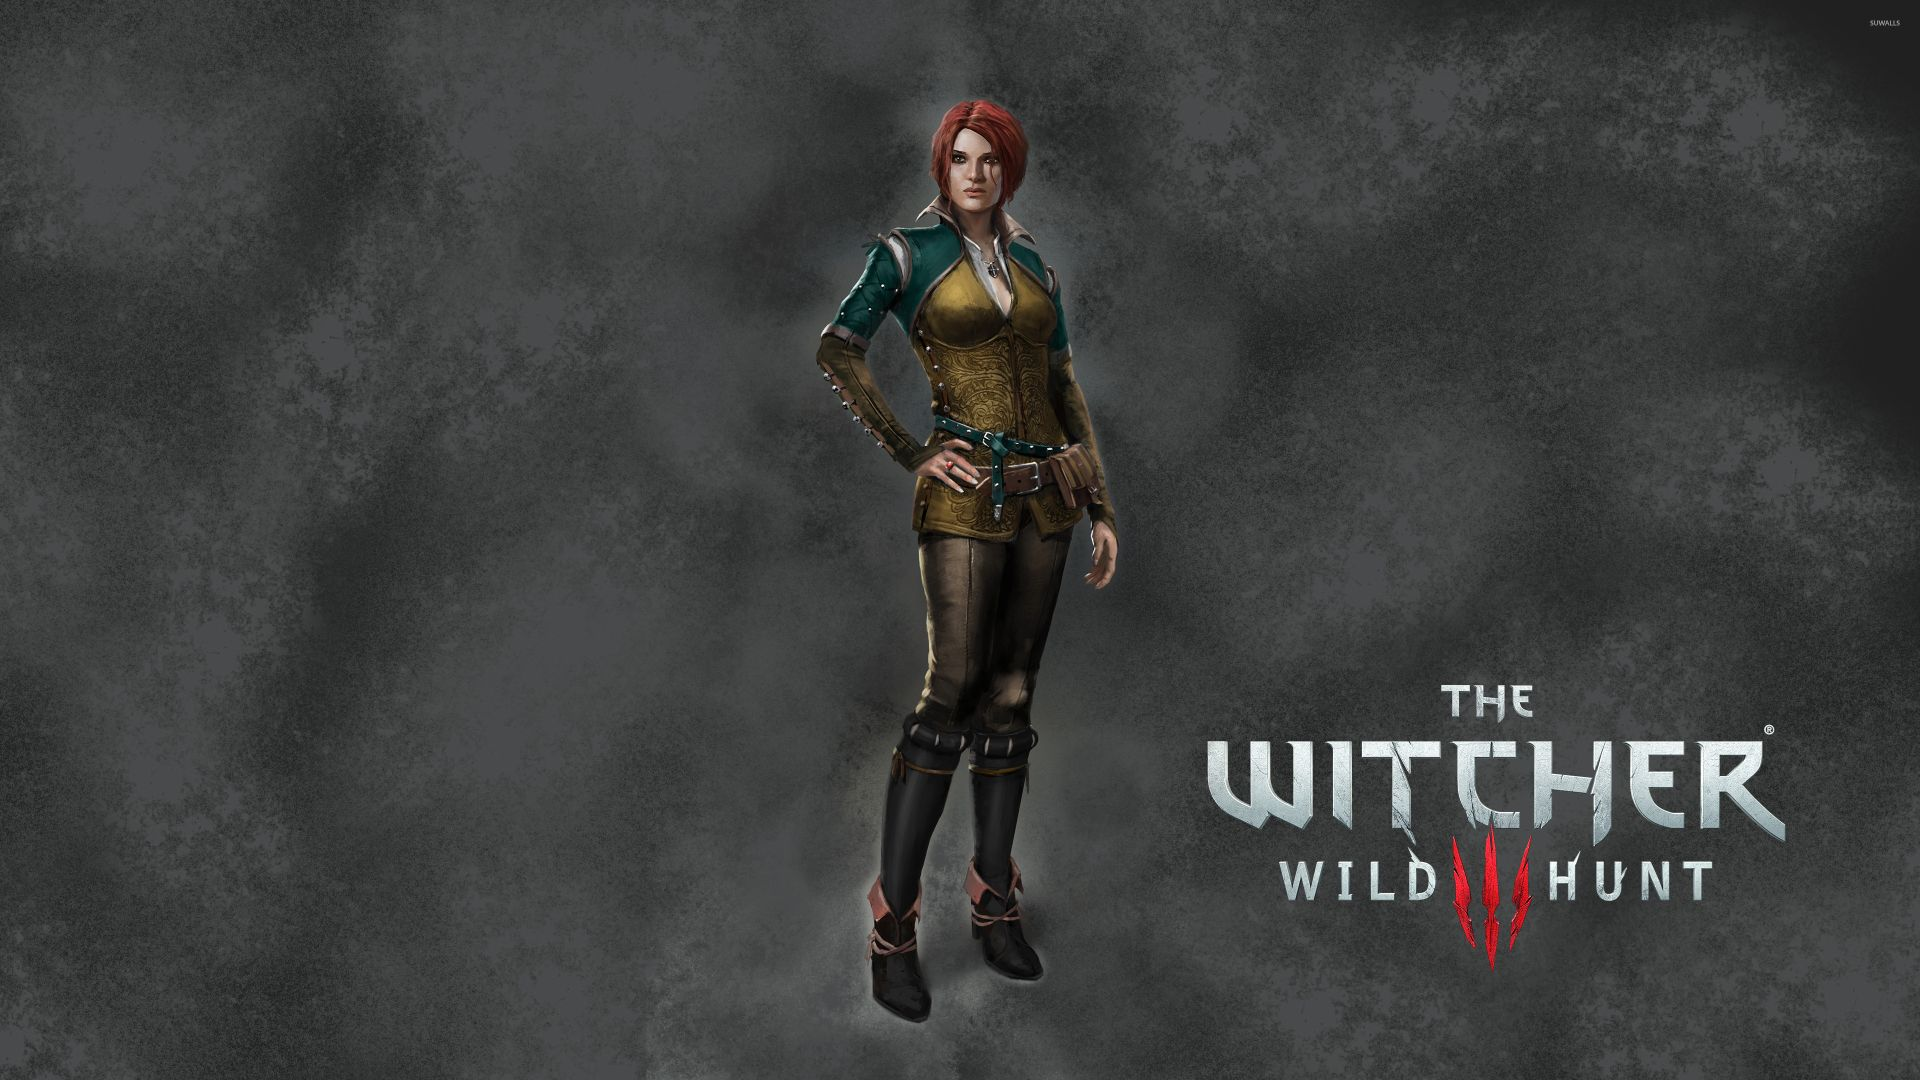 The Witcher Triss, Desktop Wallpaper